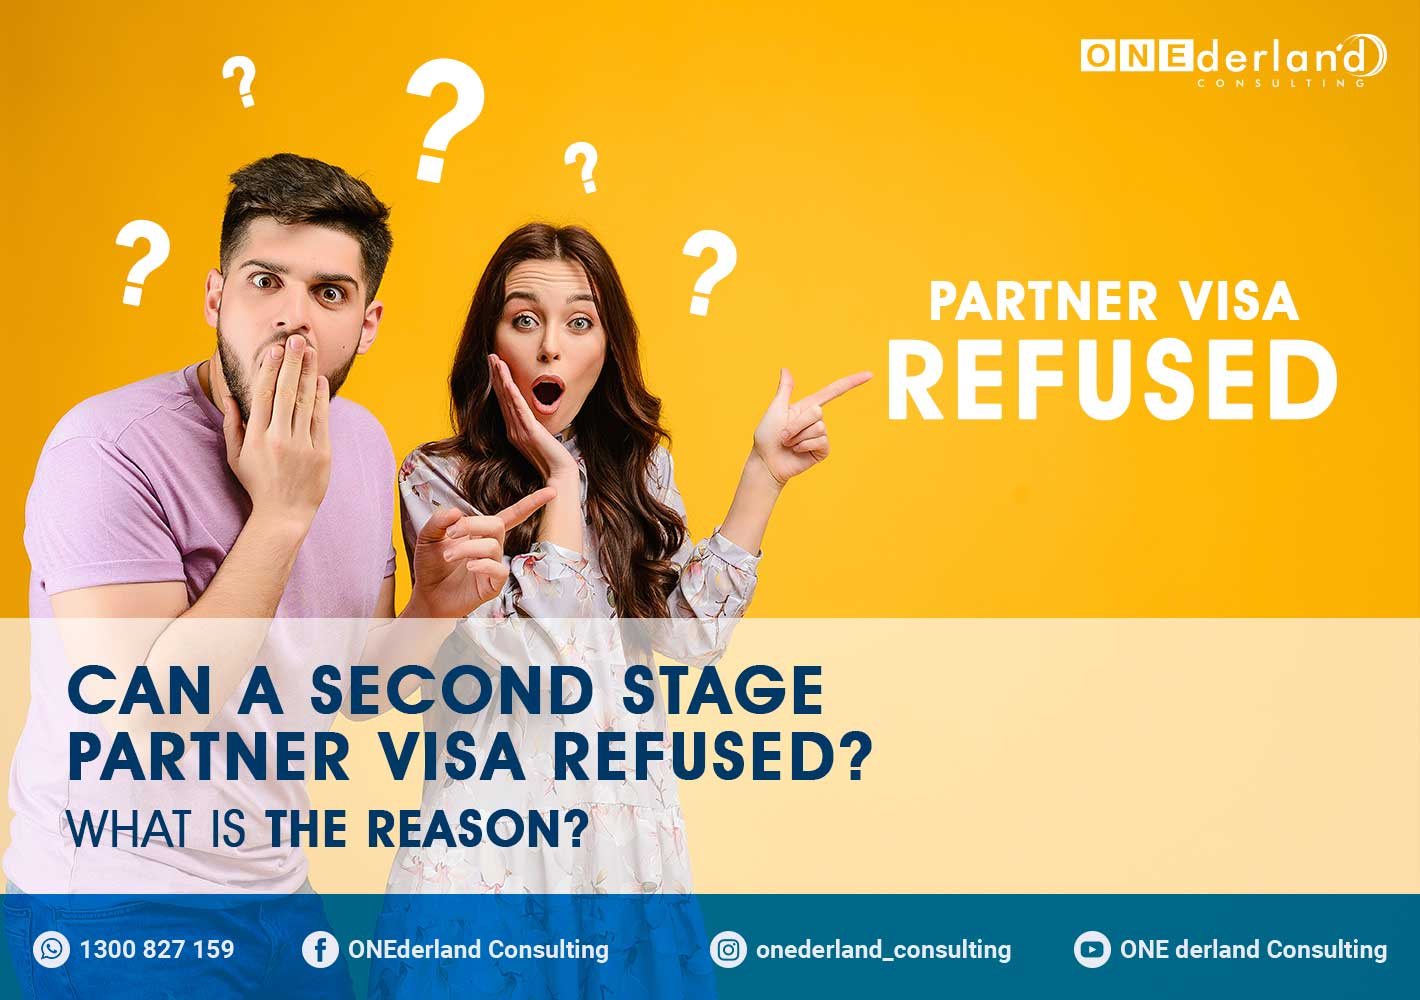 Can a Second Stage Partner Visa Refused? What Is The Reason?